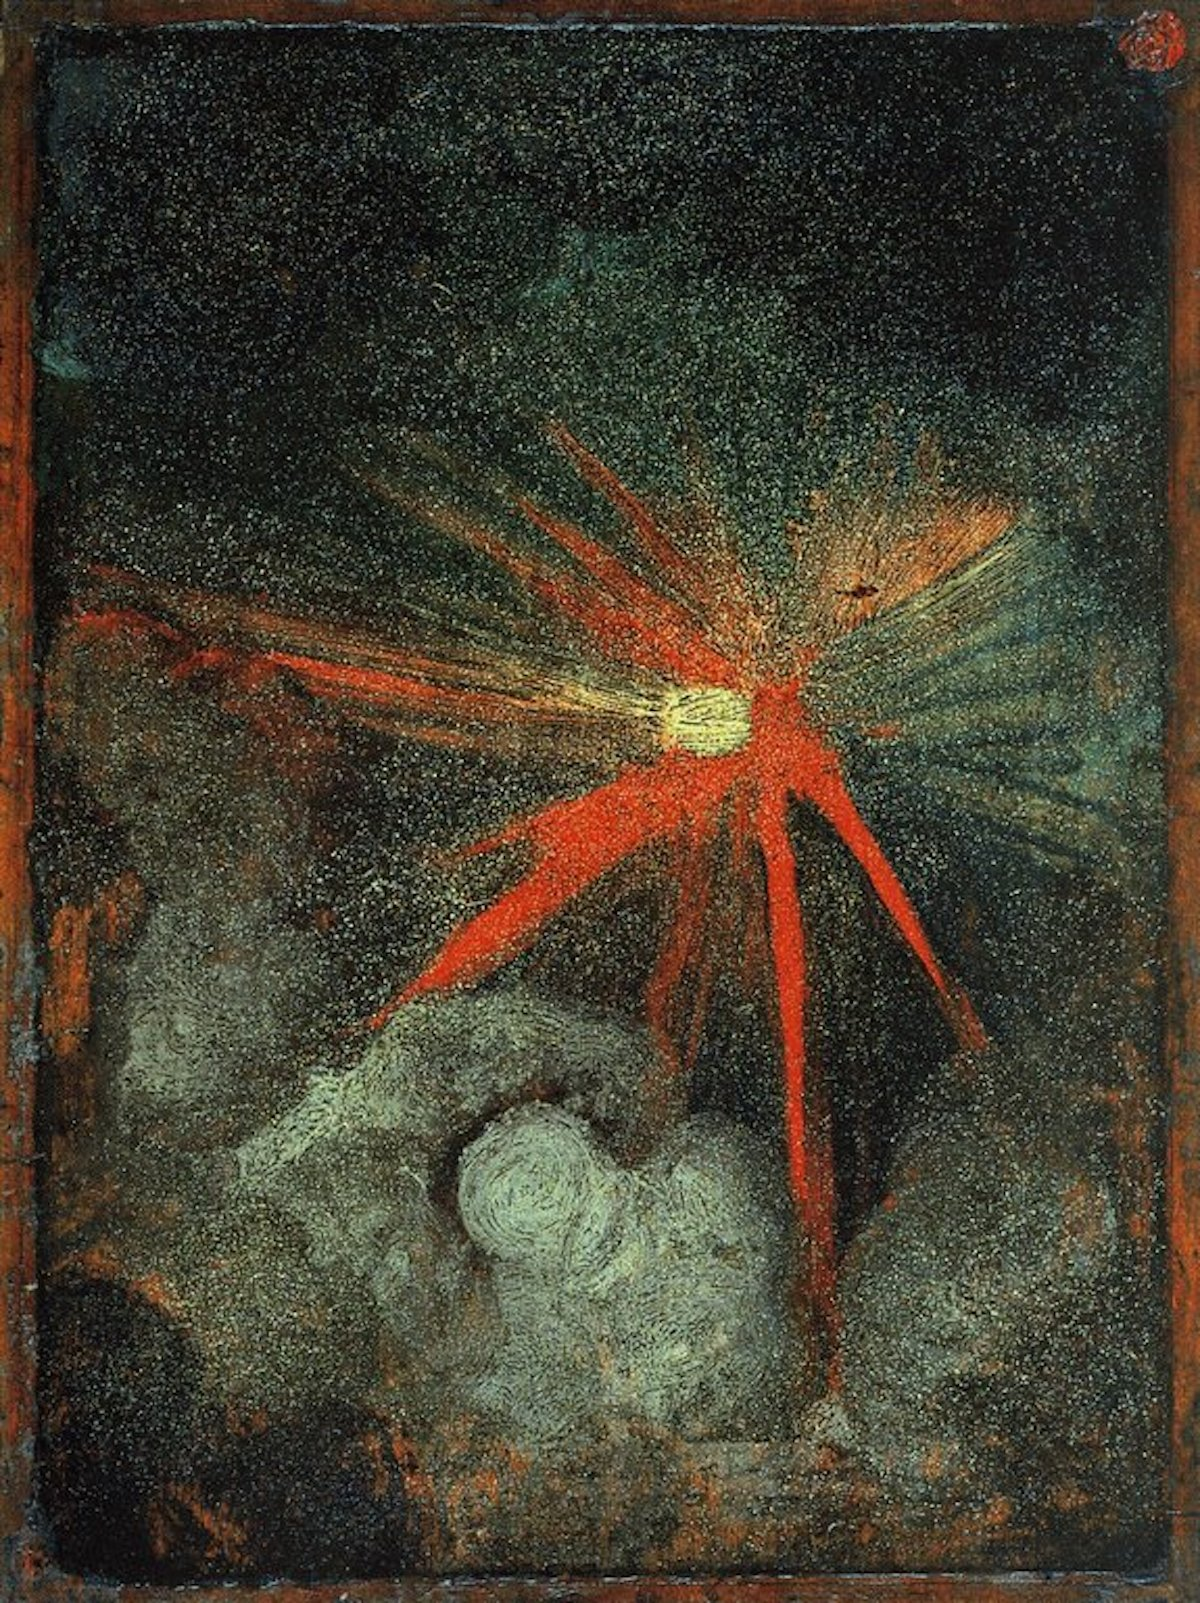 advent 10 Heavenly Body in the Night Sky - Albrecht Dürer, c. 1497